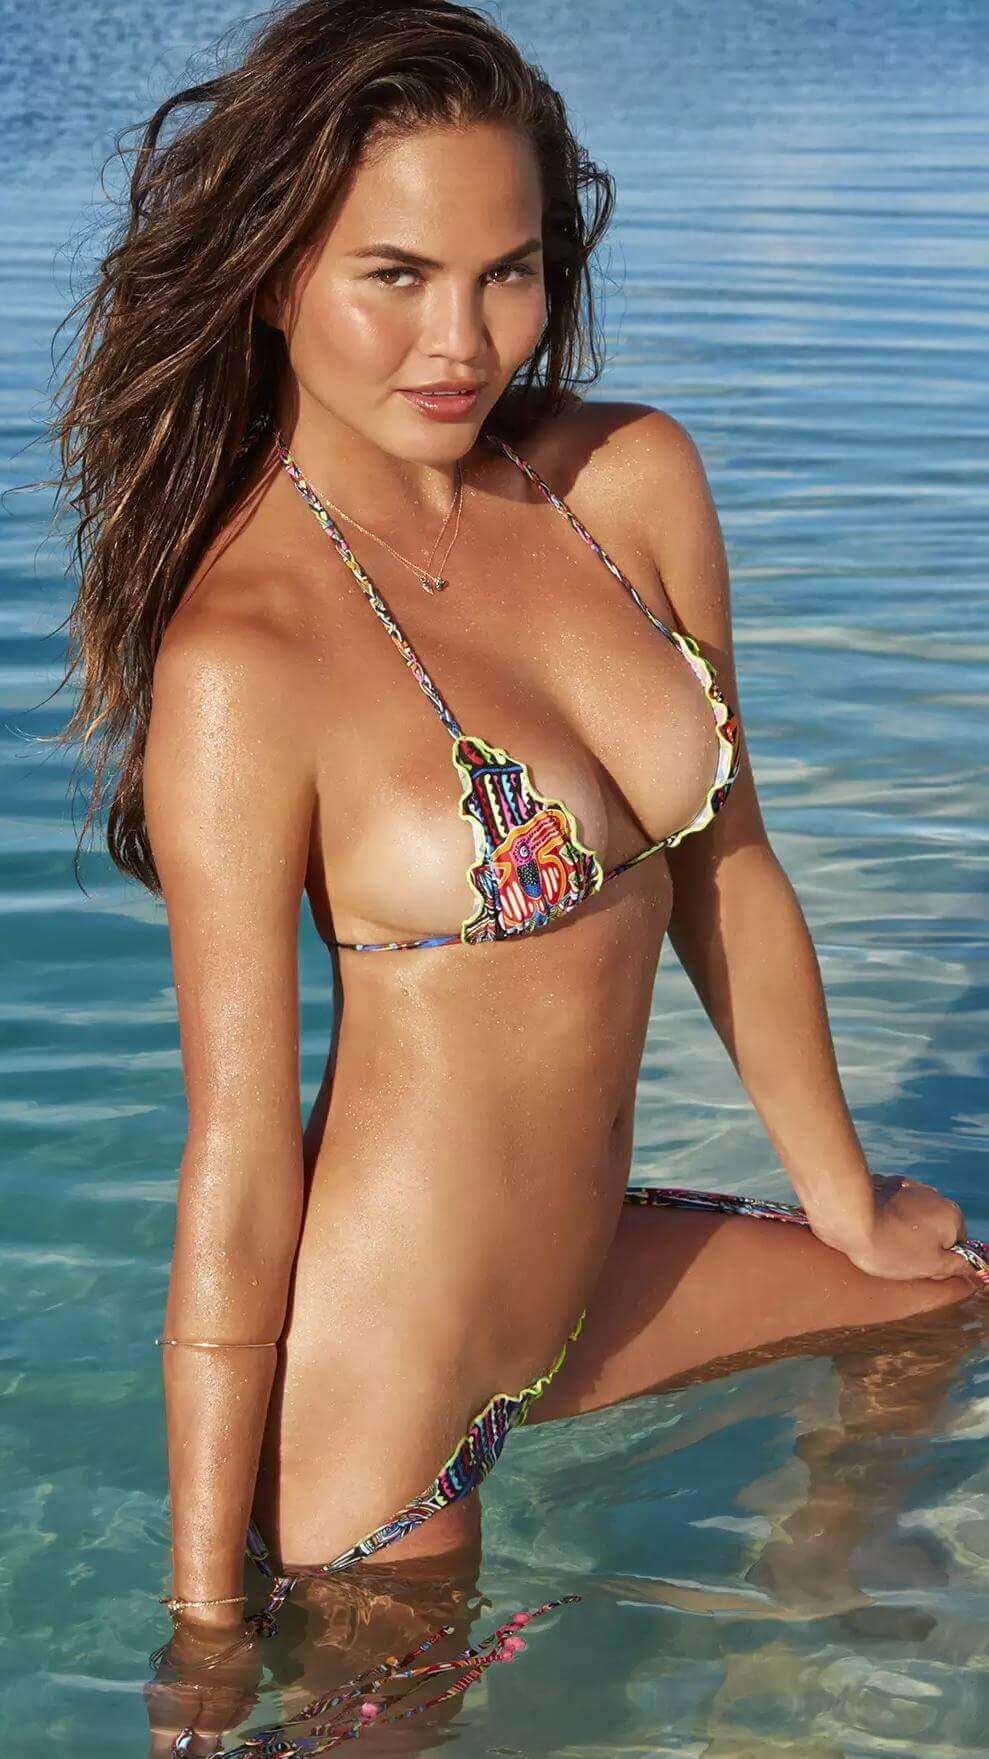 50 Hot And Sexy Chrissy Teigen Photos - 12thBlog